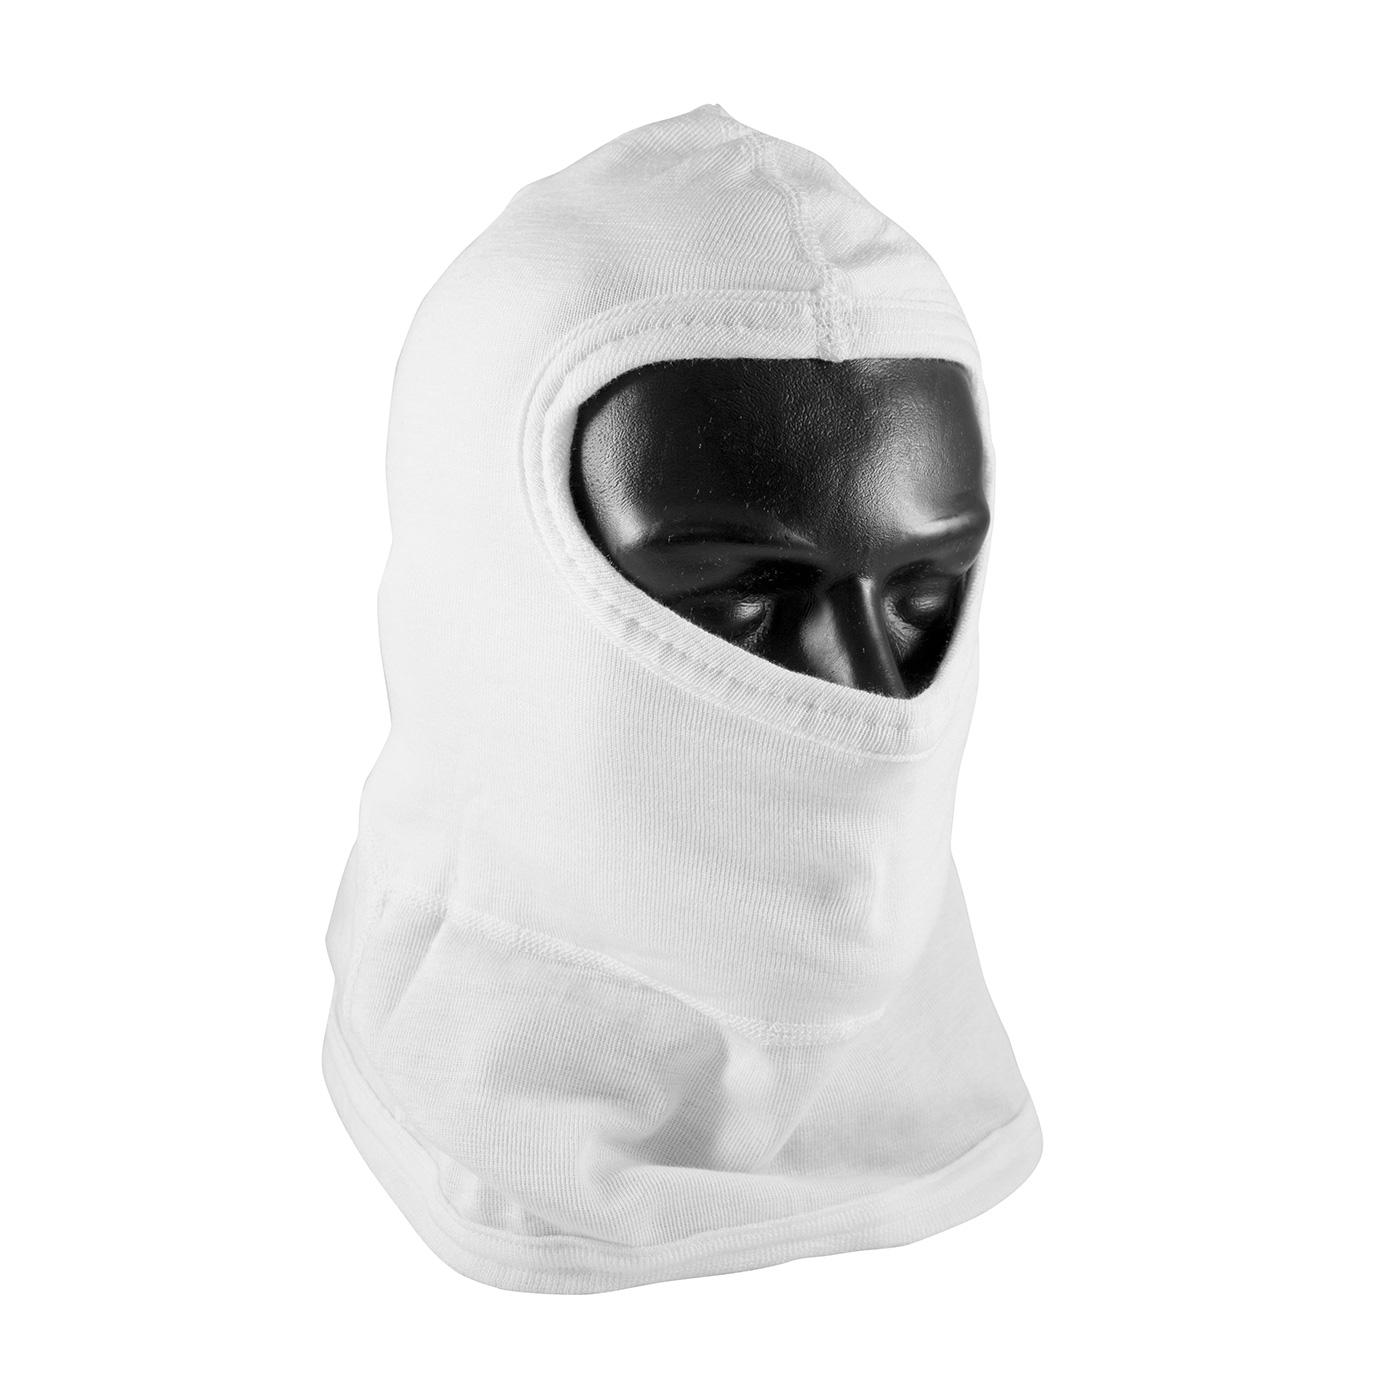 PIP® Nomex® White Double Layer Fire Resistant Full Face Hood With Bib - One Size